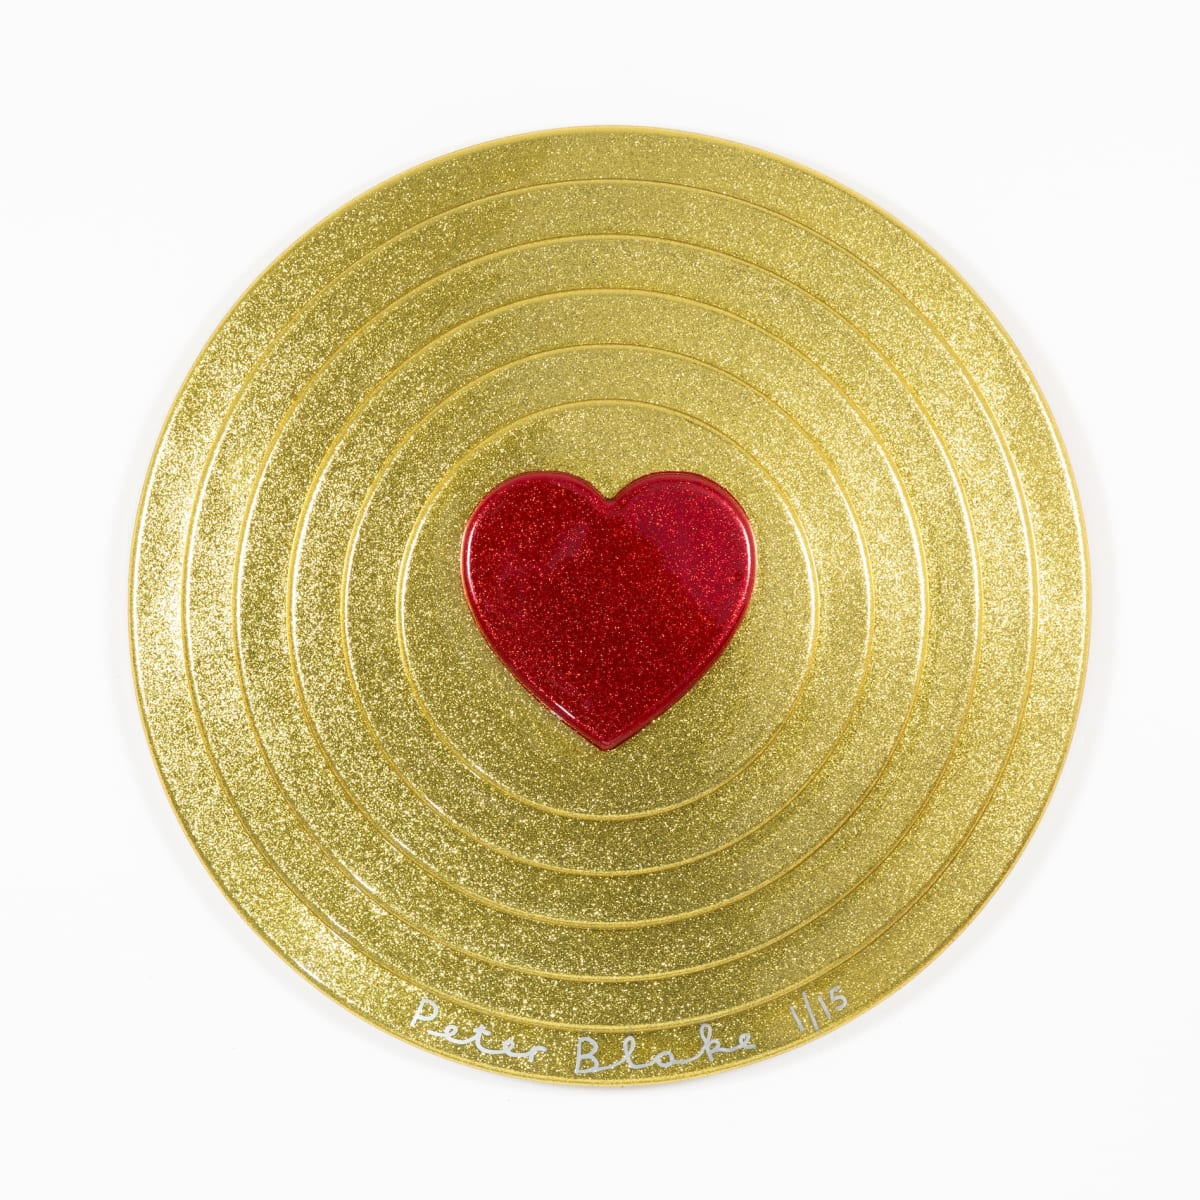 Peter Blake Red heart on gold Target (metal flake), 2017 Vacuum formed plastic, paint 69 x 69 x 10 cm Edition of 15 Signed and numbered